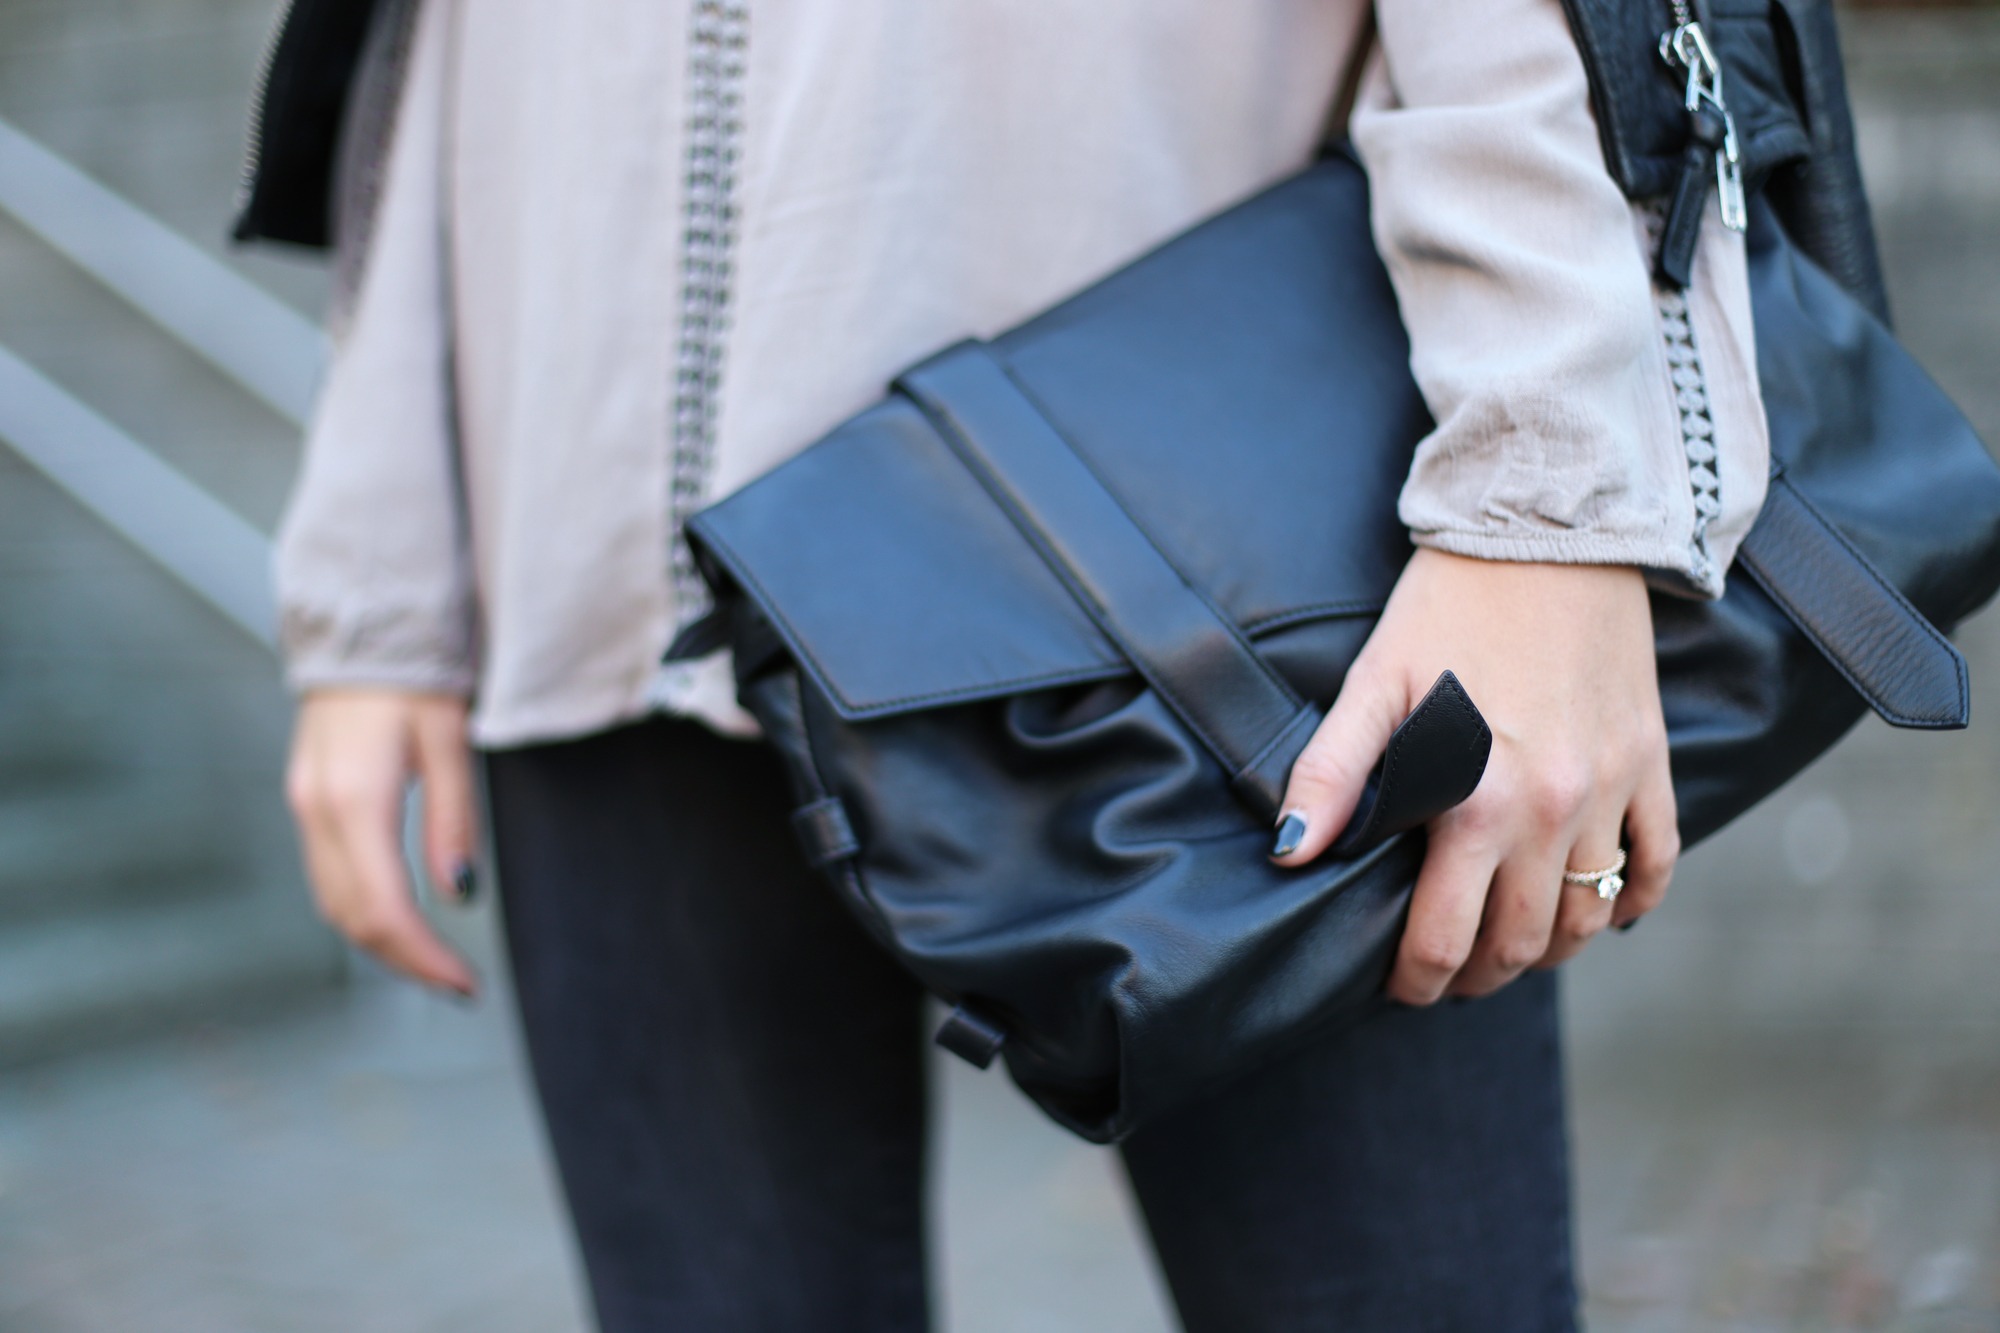 Minimalist street style: black leather purse and black nails.